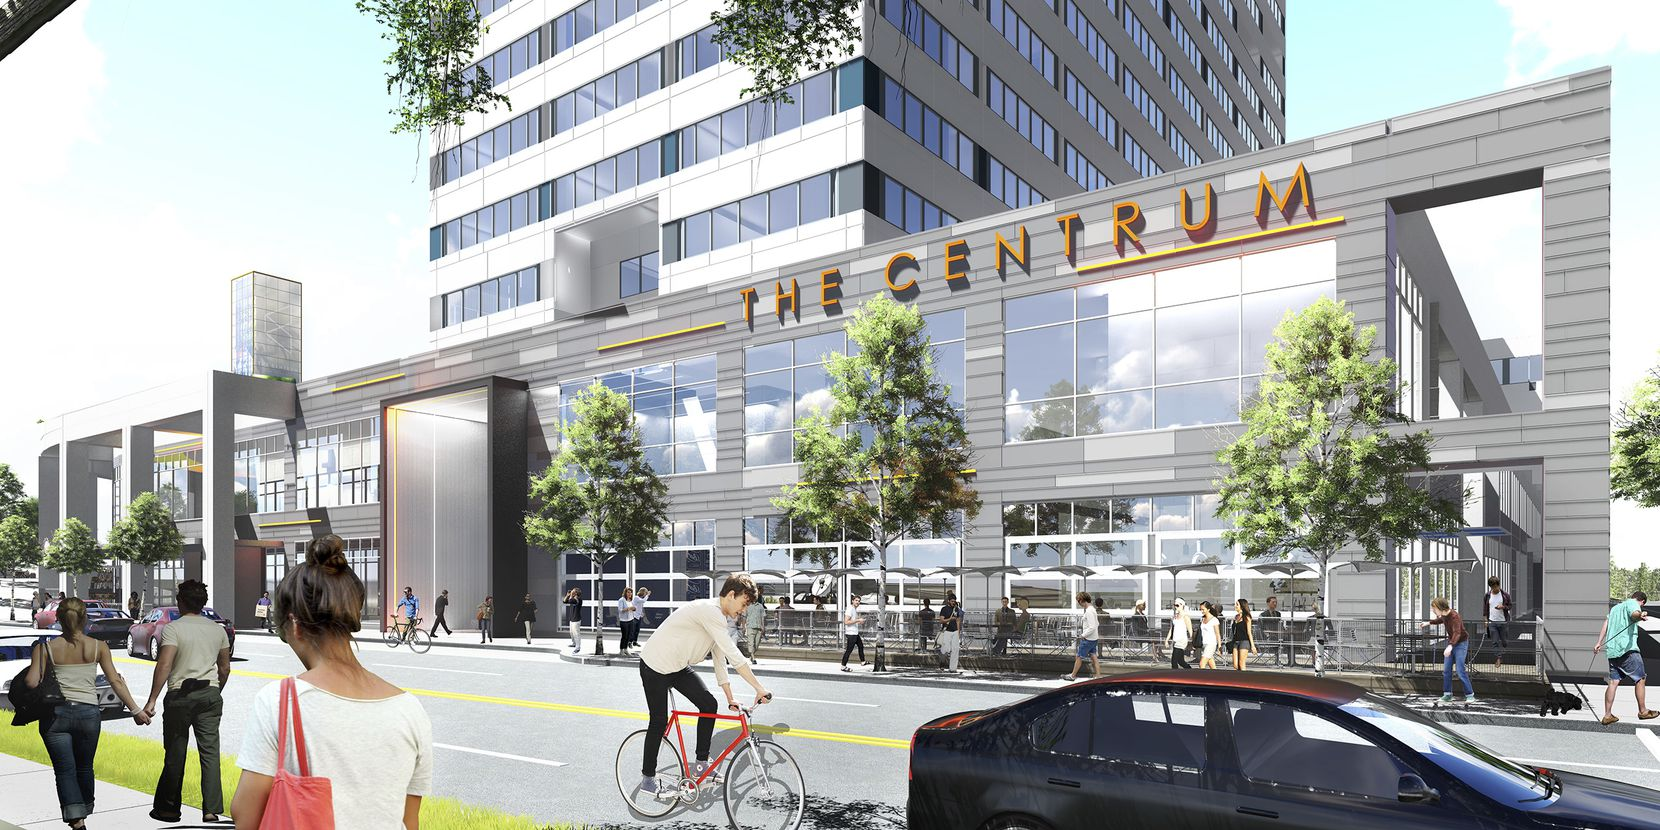 A rendering from The Centrum's $25 million renovation. It has already attracted startup and tech tenants, including RewardStyle and Dallas office of San Francisco-based Salesforce. (Quadrant Investment Properties)